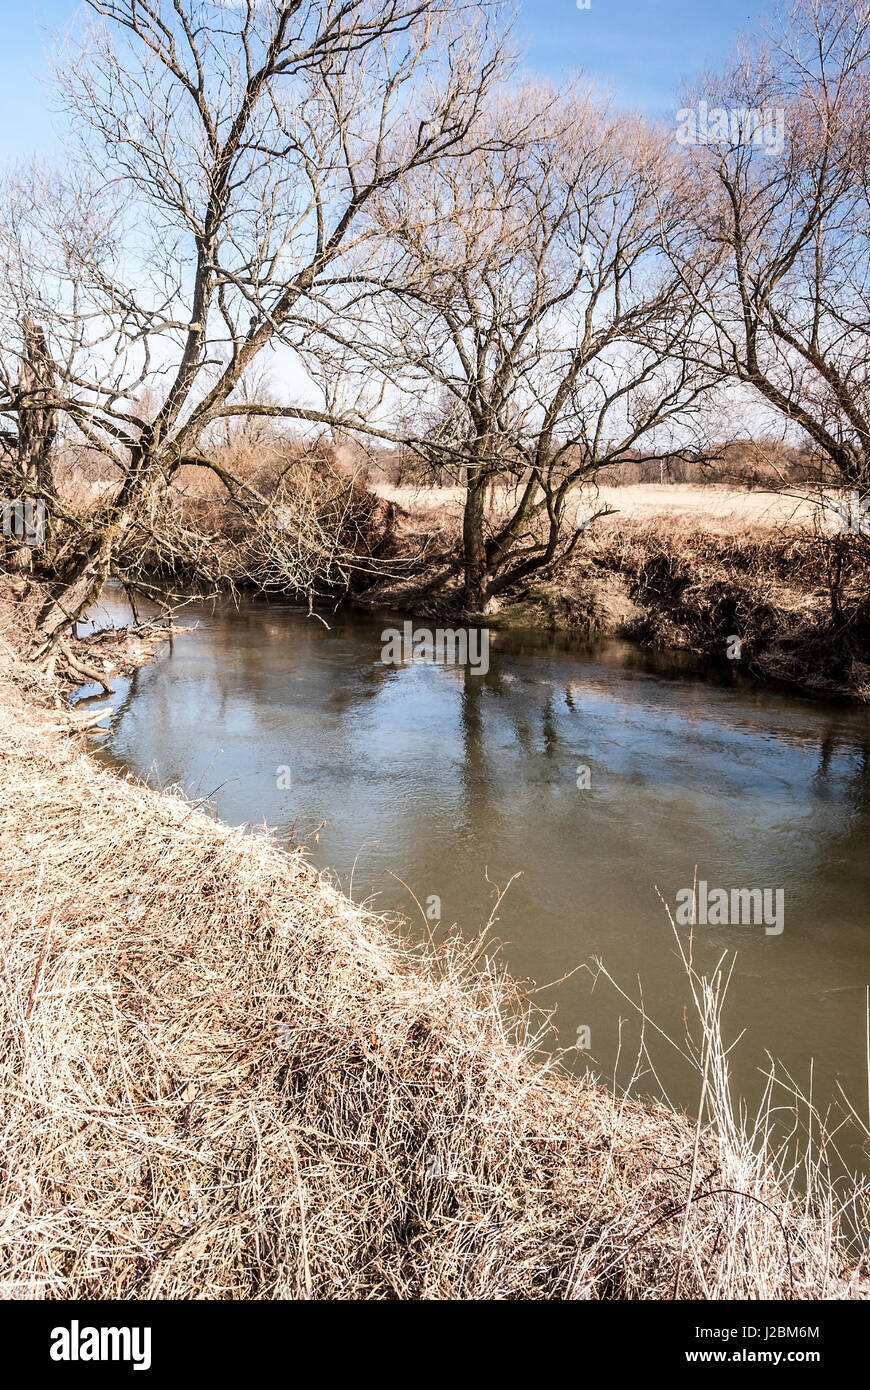 Odra river with trees and clear sky in CHKO Poodri protected area near Studenka city in Czech republic during springtime Stock Photo